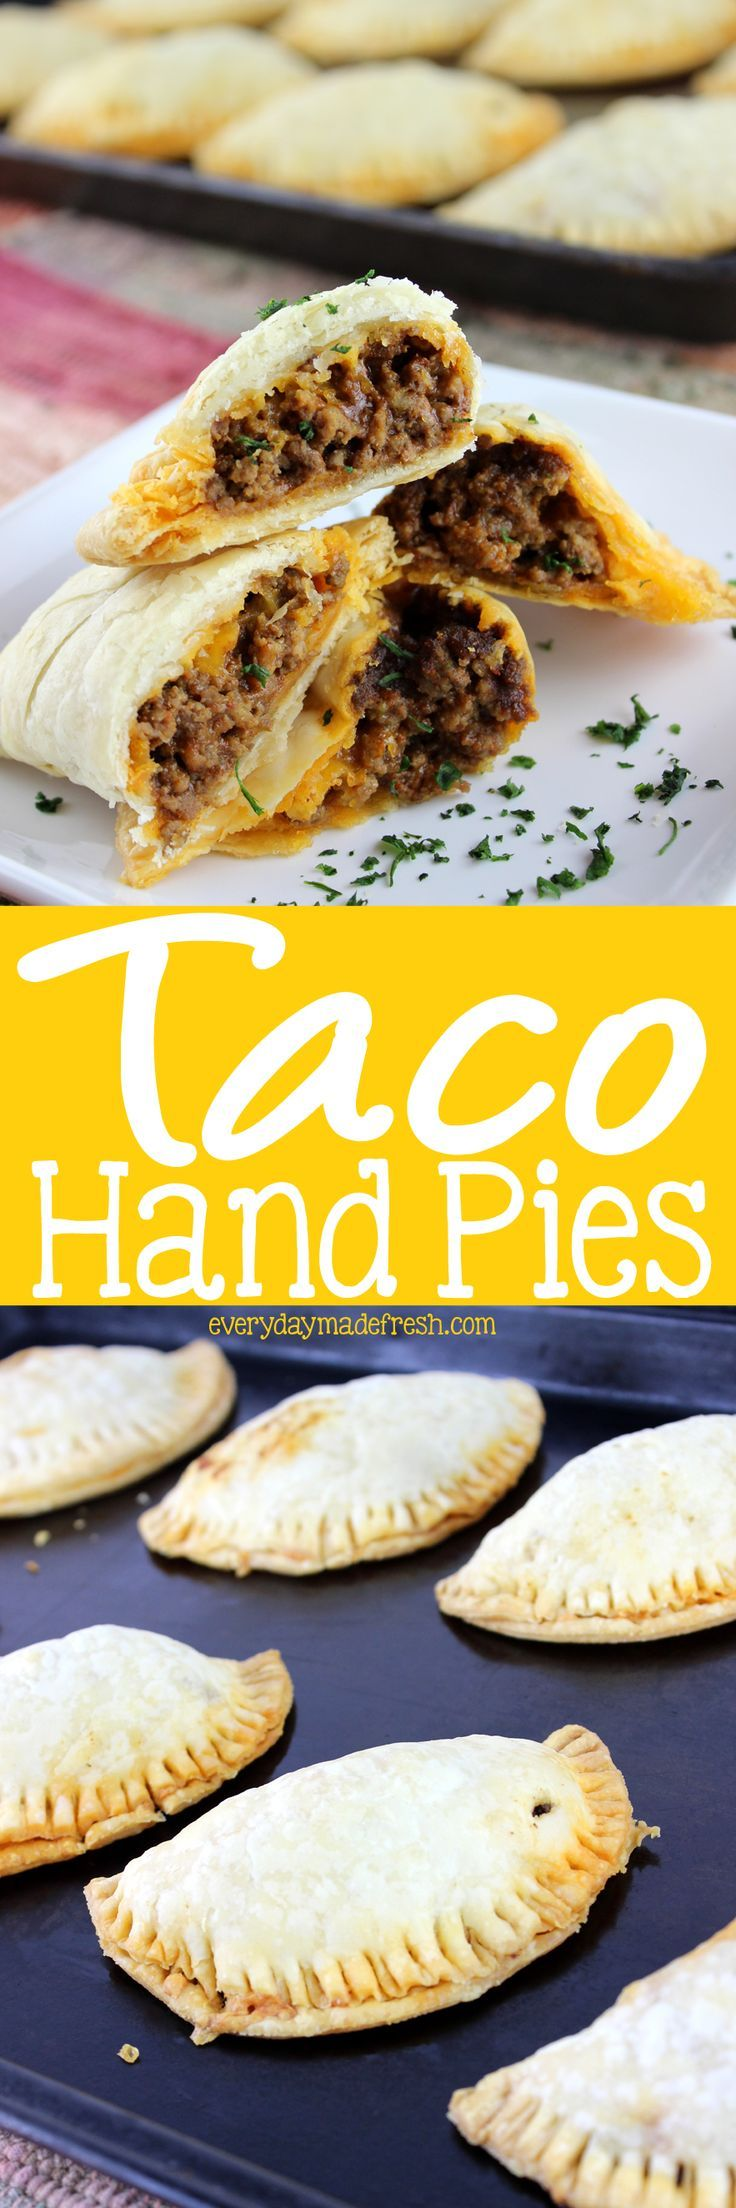 These savory hand pies are the perfect portable snack, lunch, or dinner. Store bought pie dough make these Taco Hand Pies easy! | EverydayMadeFresh.com http://www.everydaymadefresh.com/taco-hand-pies/